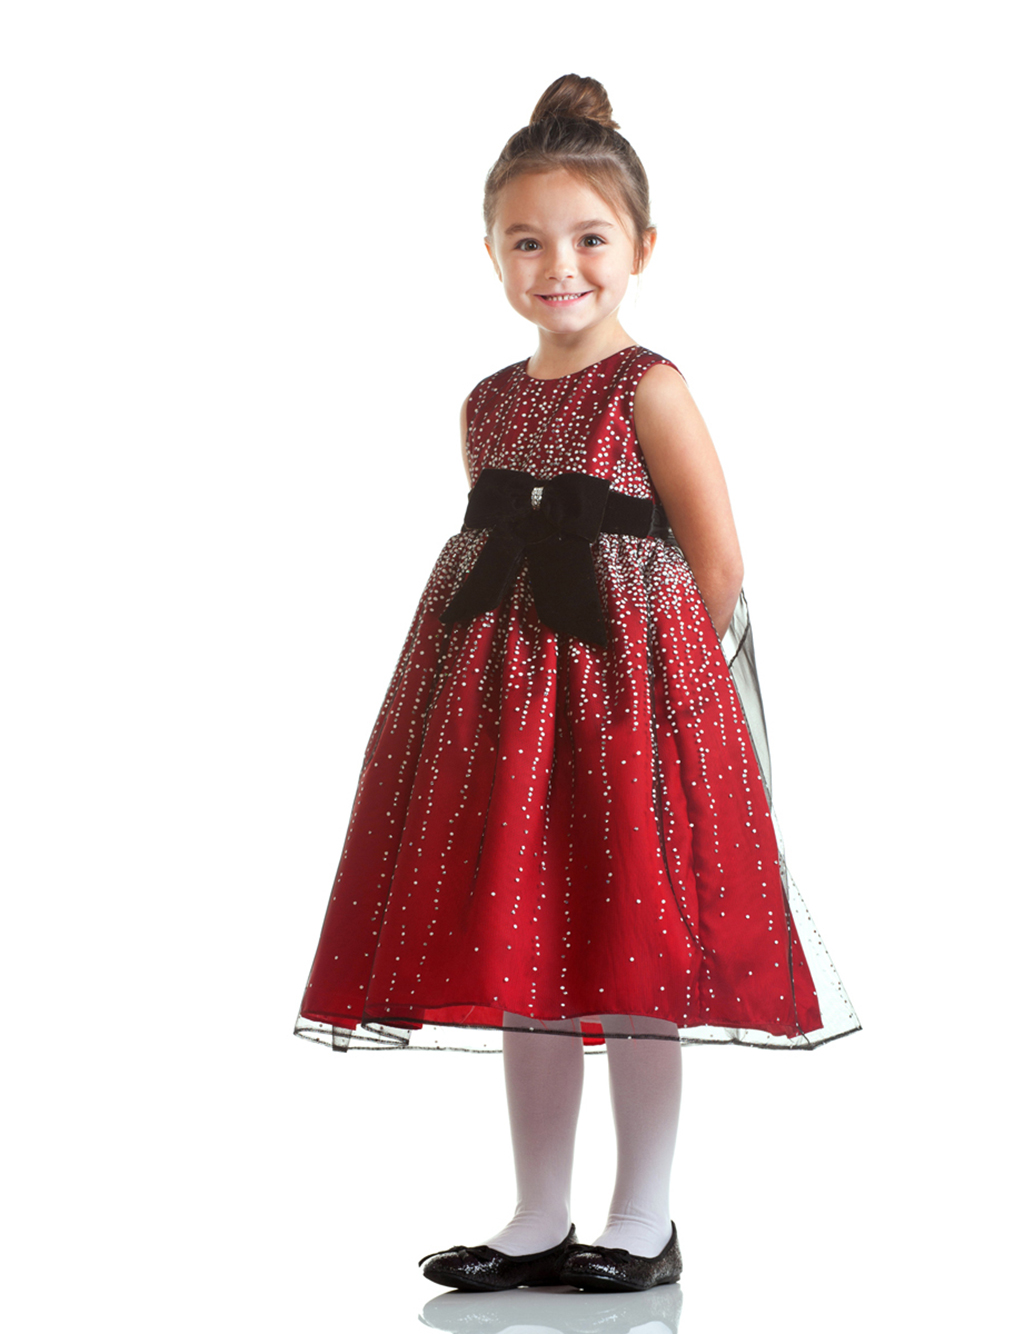 Olivia-Sparkle-Red-Flower-Girl-Dress-with-Velvet-Bow-Sash-for-Girls Red Dress for Little Girls